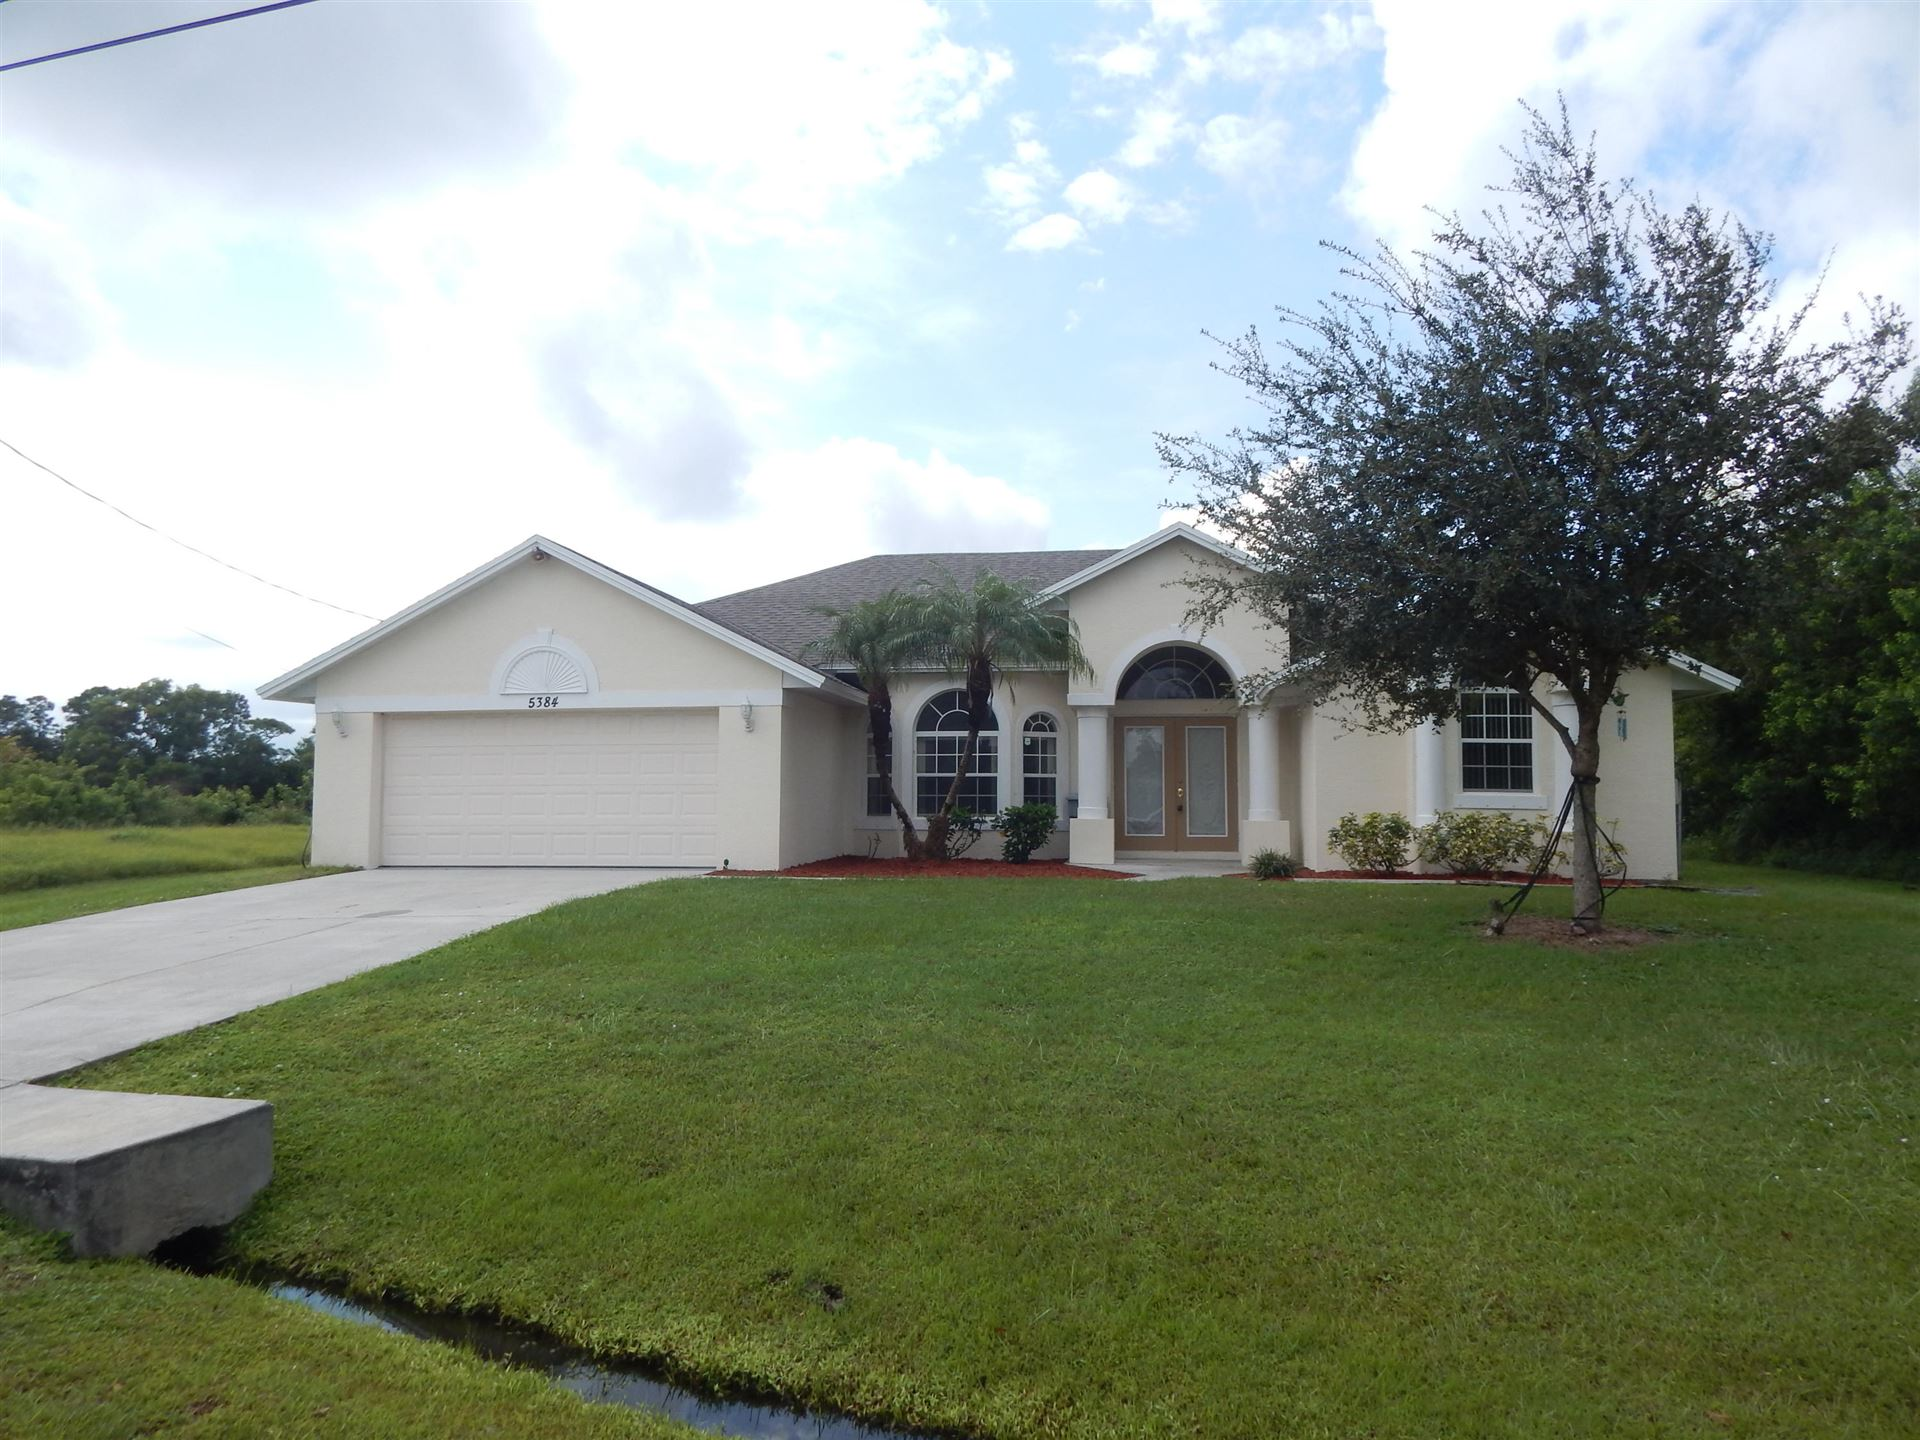 5384 NW Mara Court, Port Saint Lucie, FL 34986 - #: RX-10663154